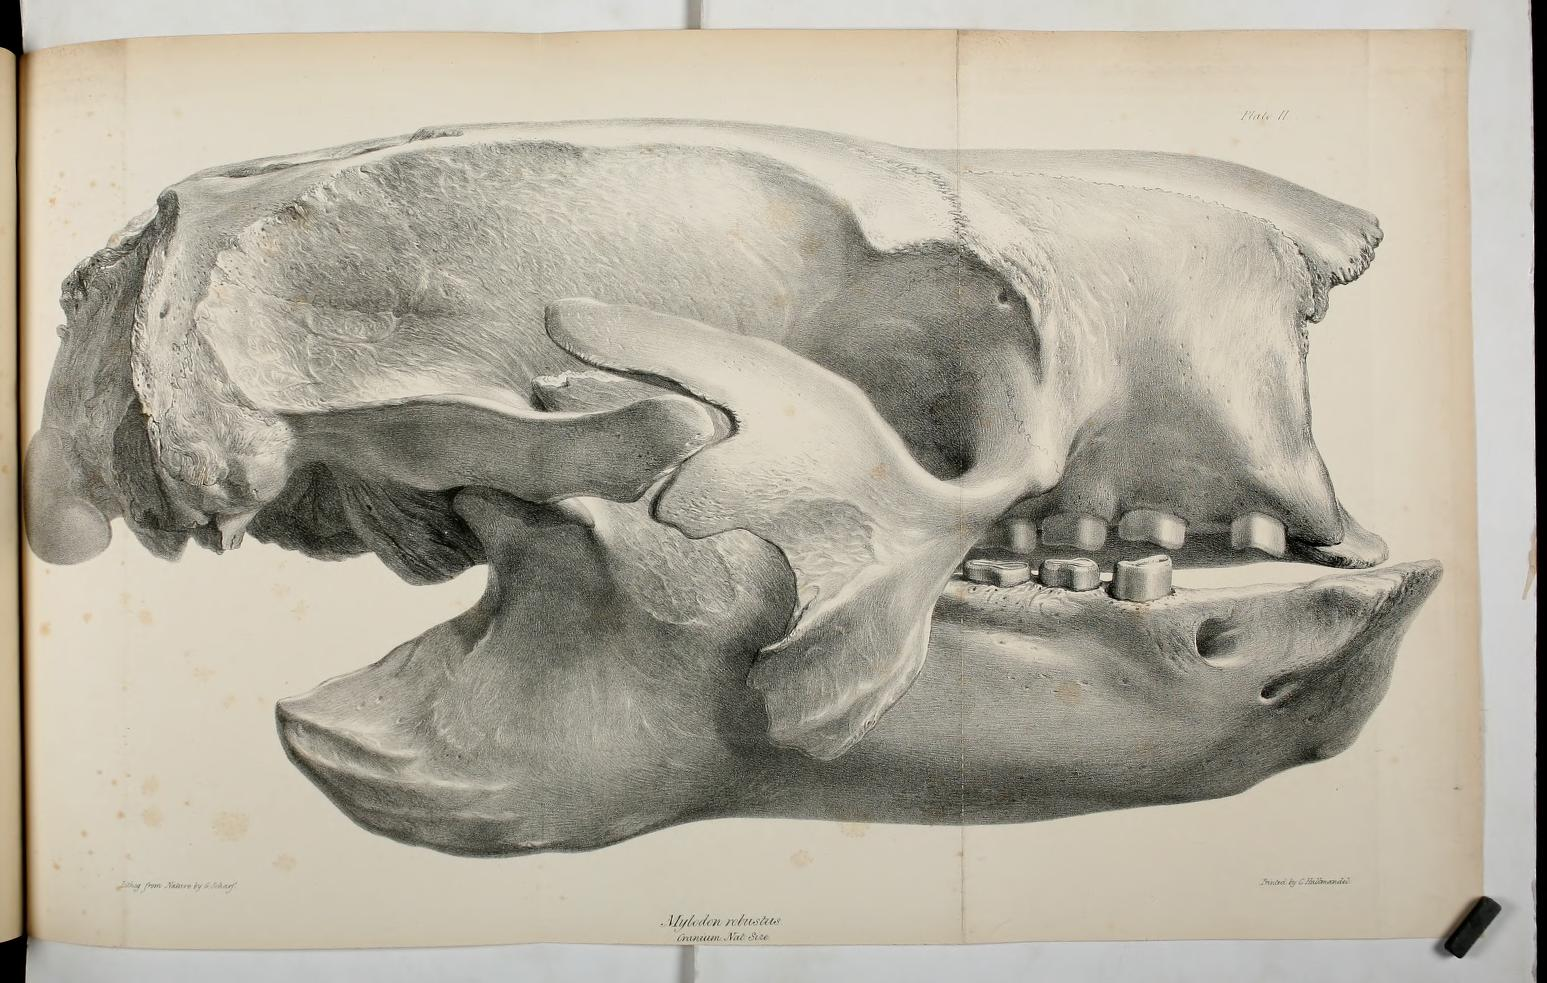 Side-view of the skull of the Mylodon robustus, natural size